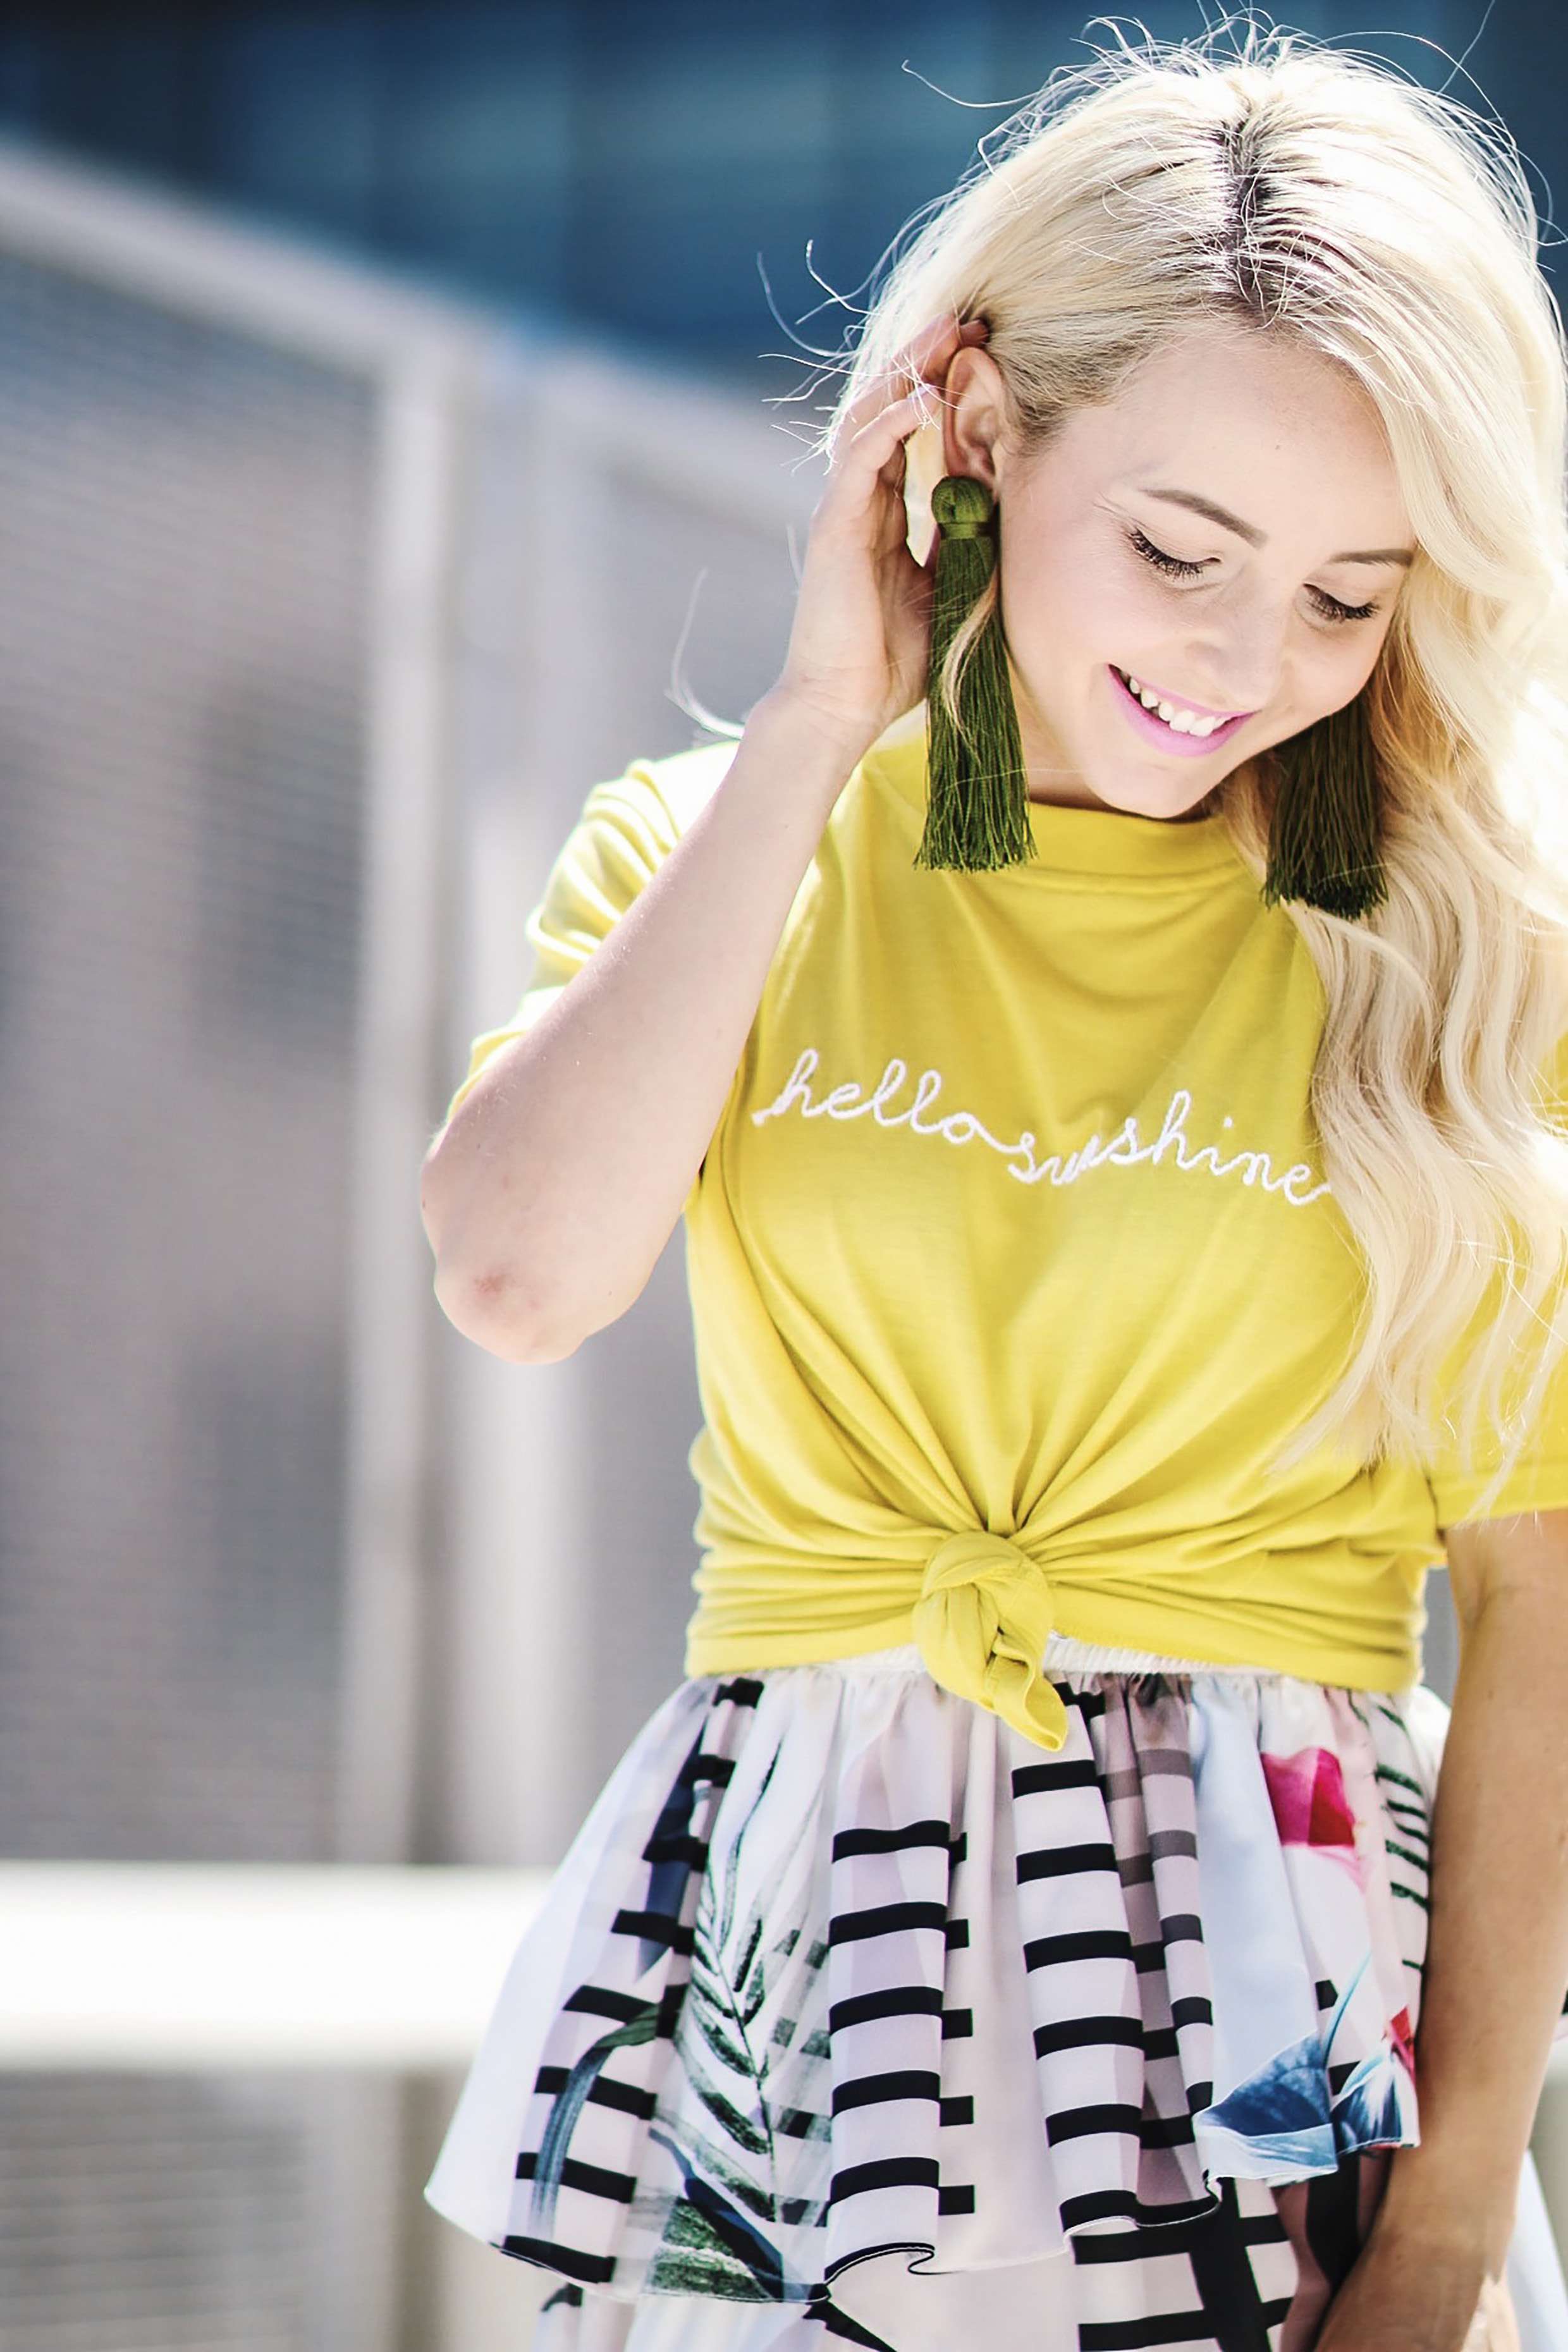 Alena Gidenko from modaprints.com shares 9 graphic tee shirts you need this Summer